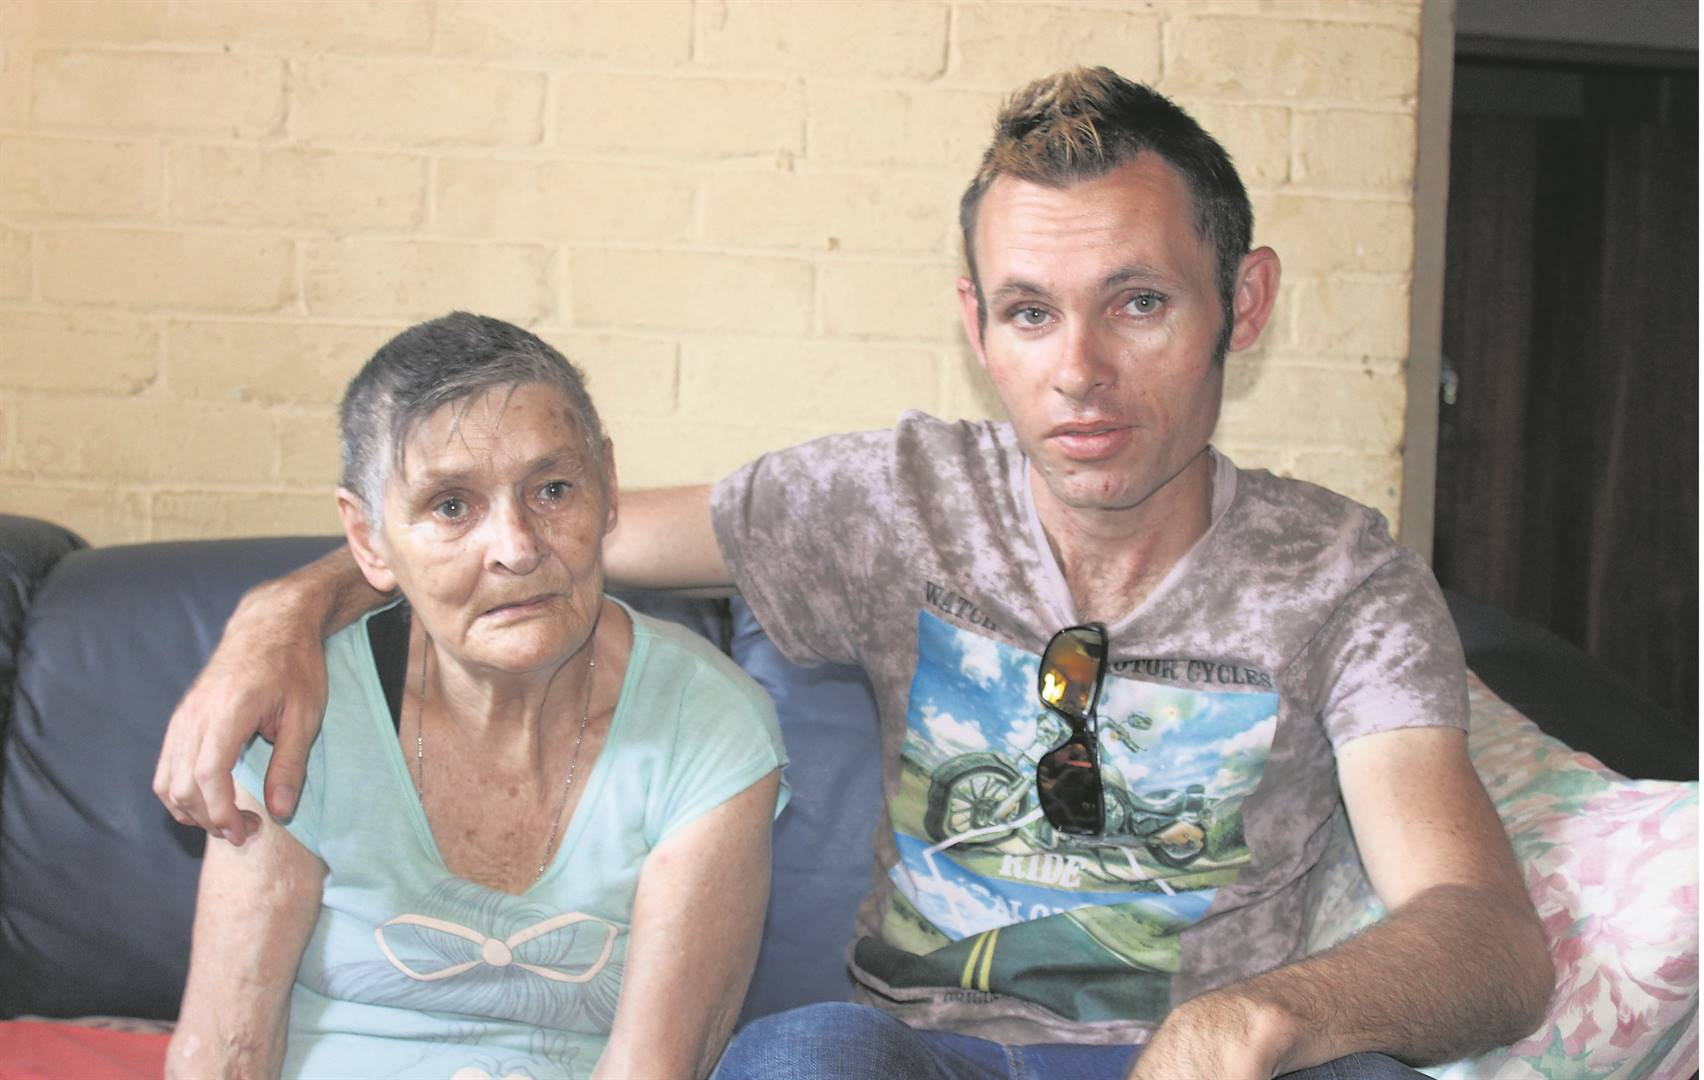 Phyllis Nel (80) and her grandson Alan Ferreira (34), who needs a referral letter to the Greys neurological department for an assessment.PHOTO: NTANDOYENKOSI DLAMINI